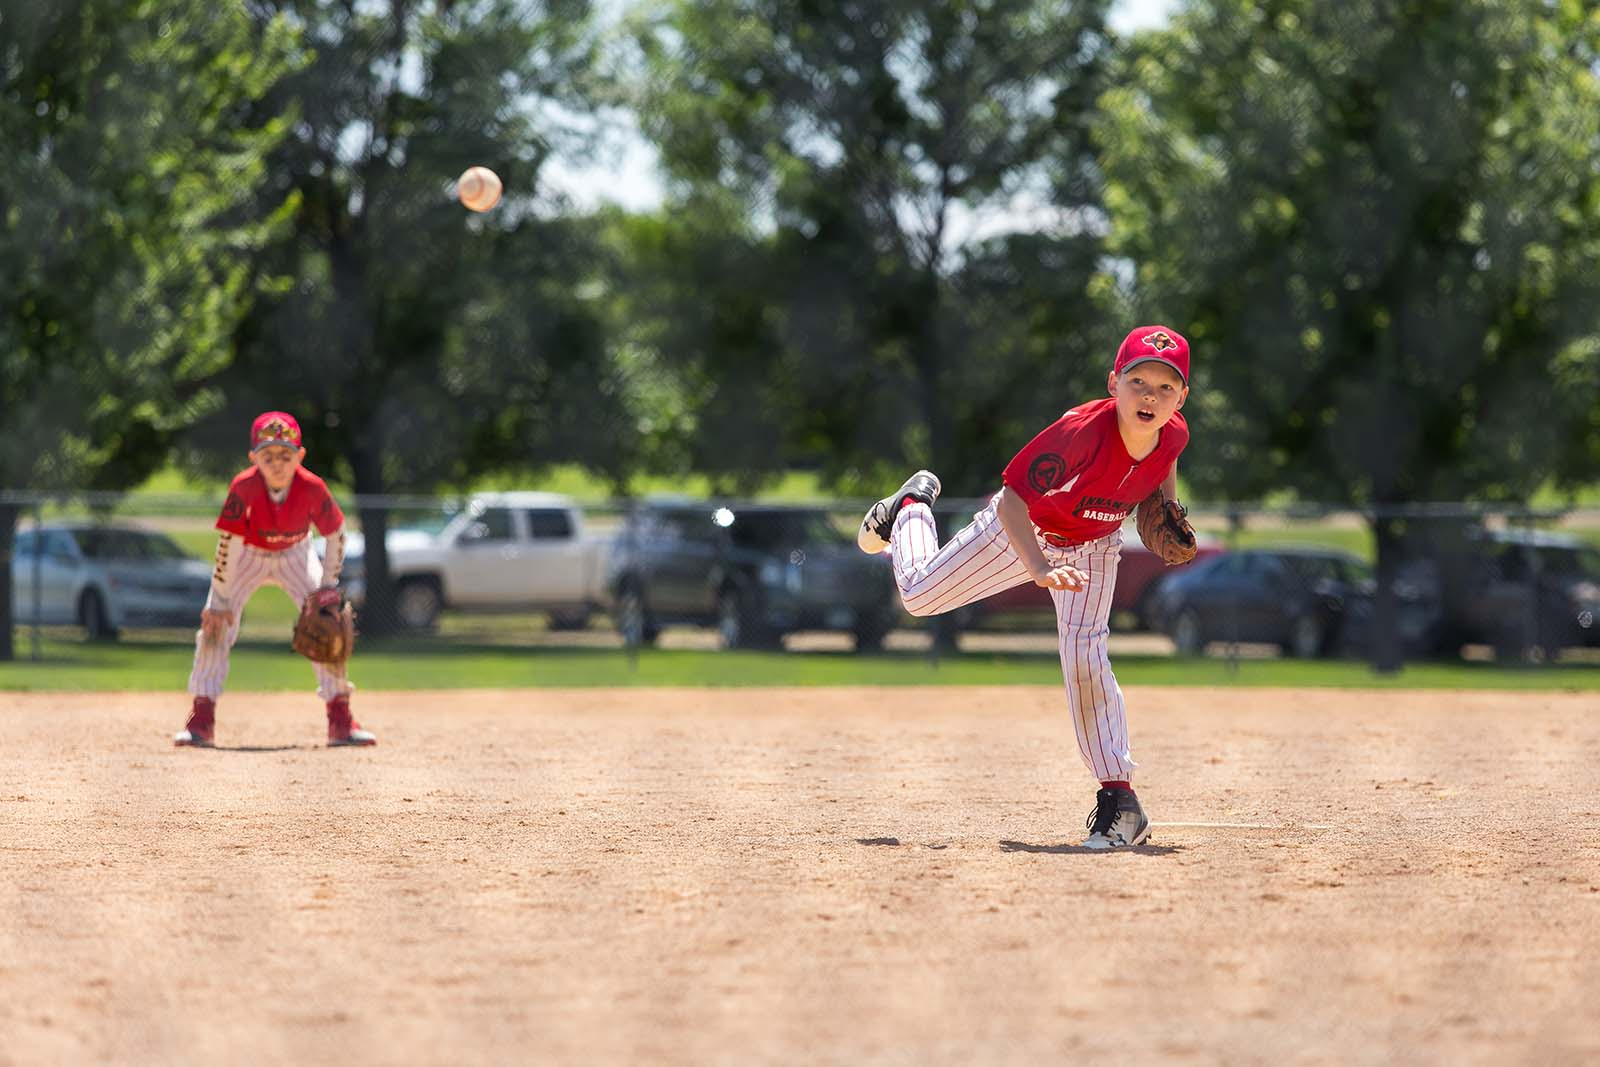 Photographing youth sports